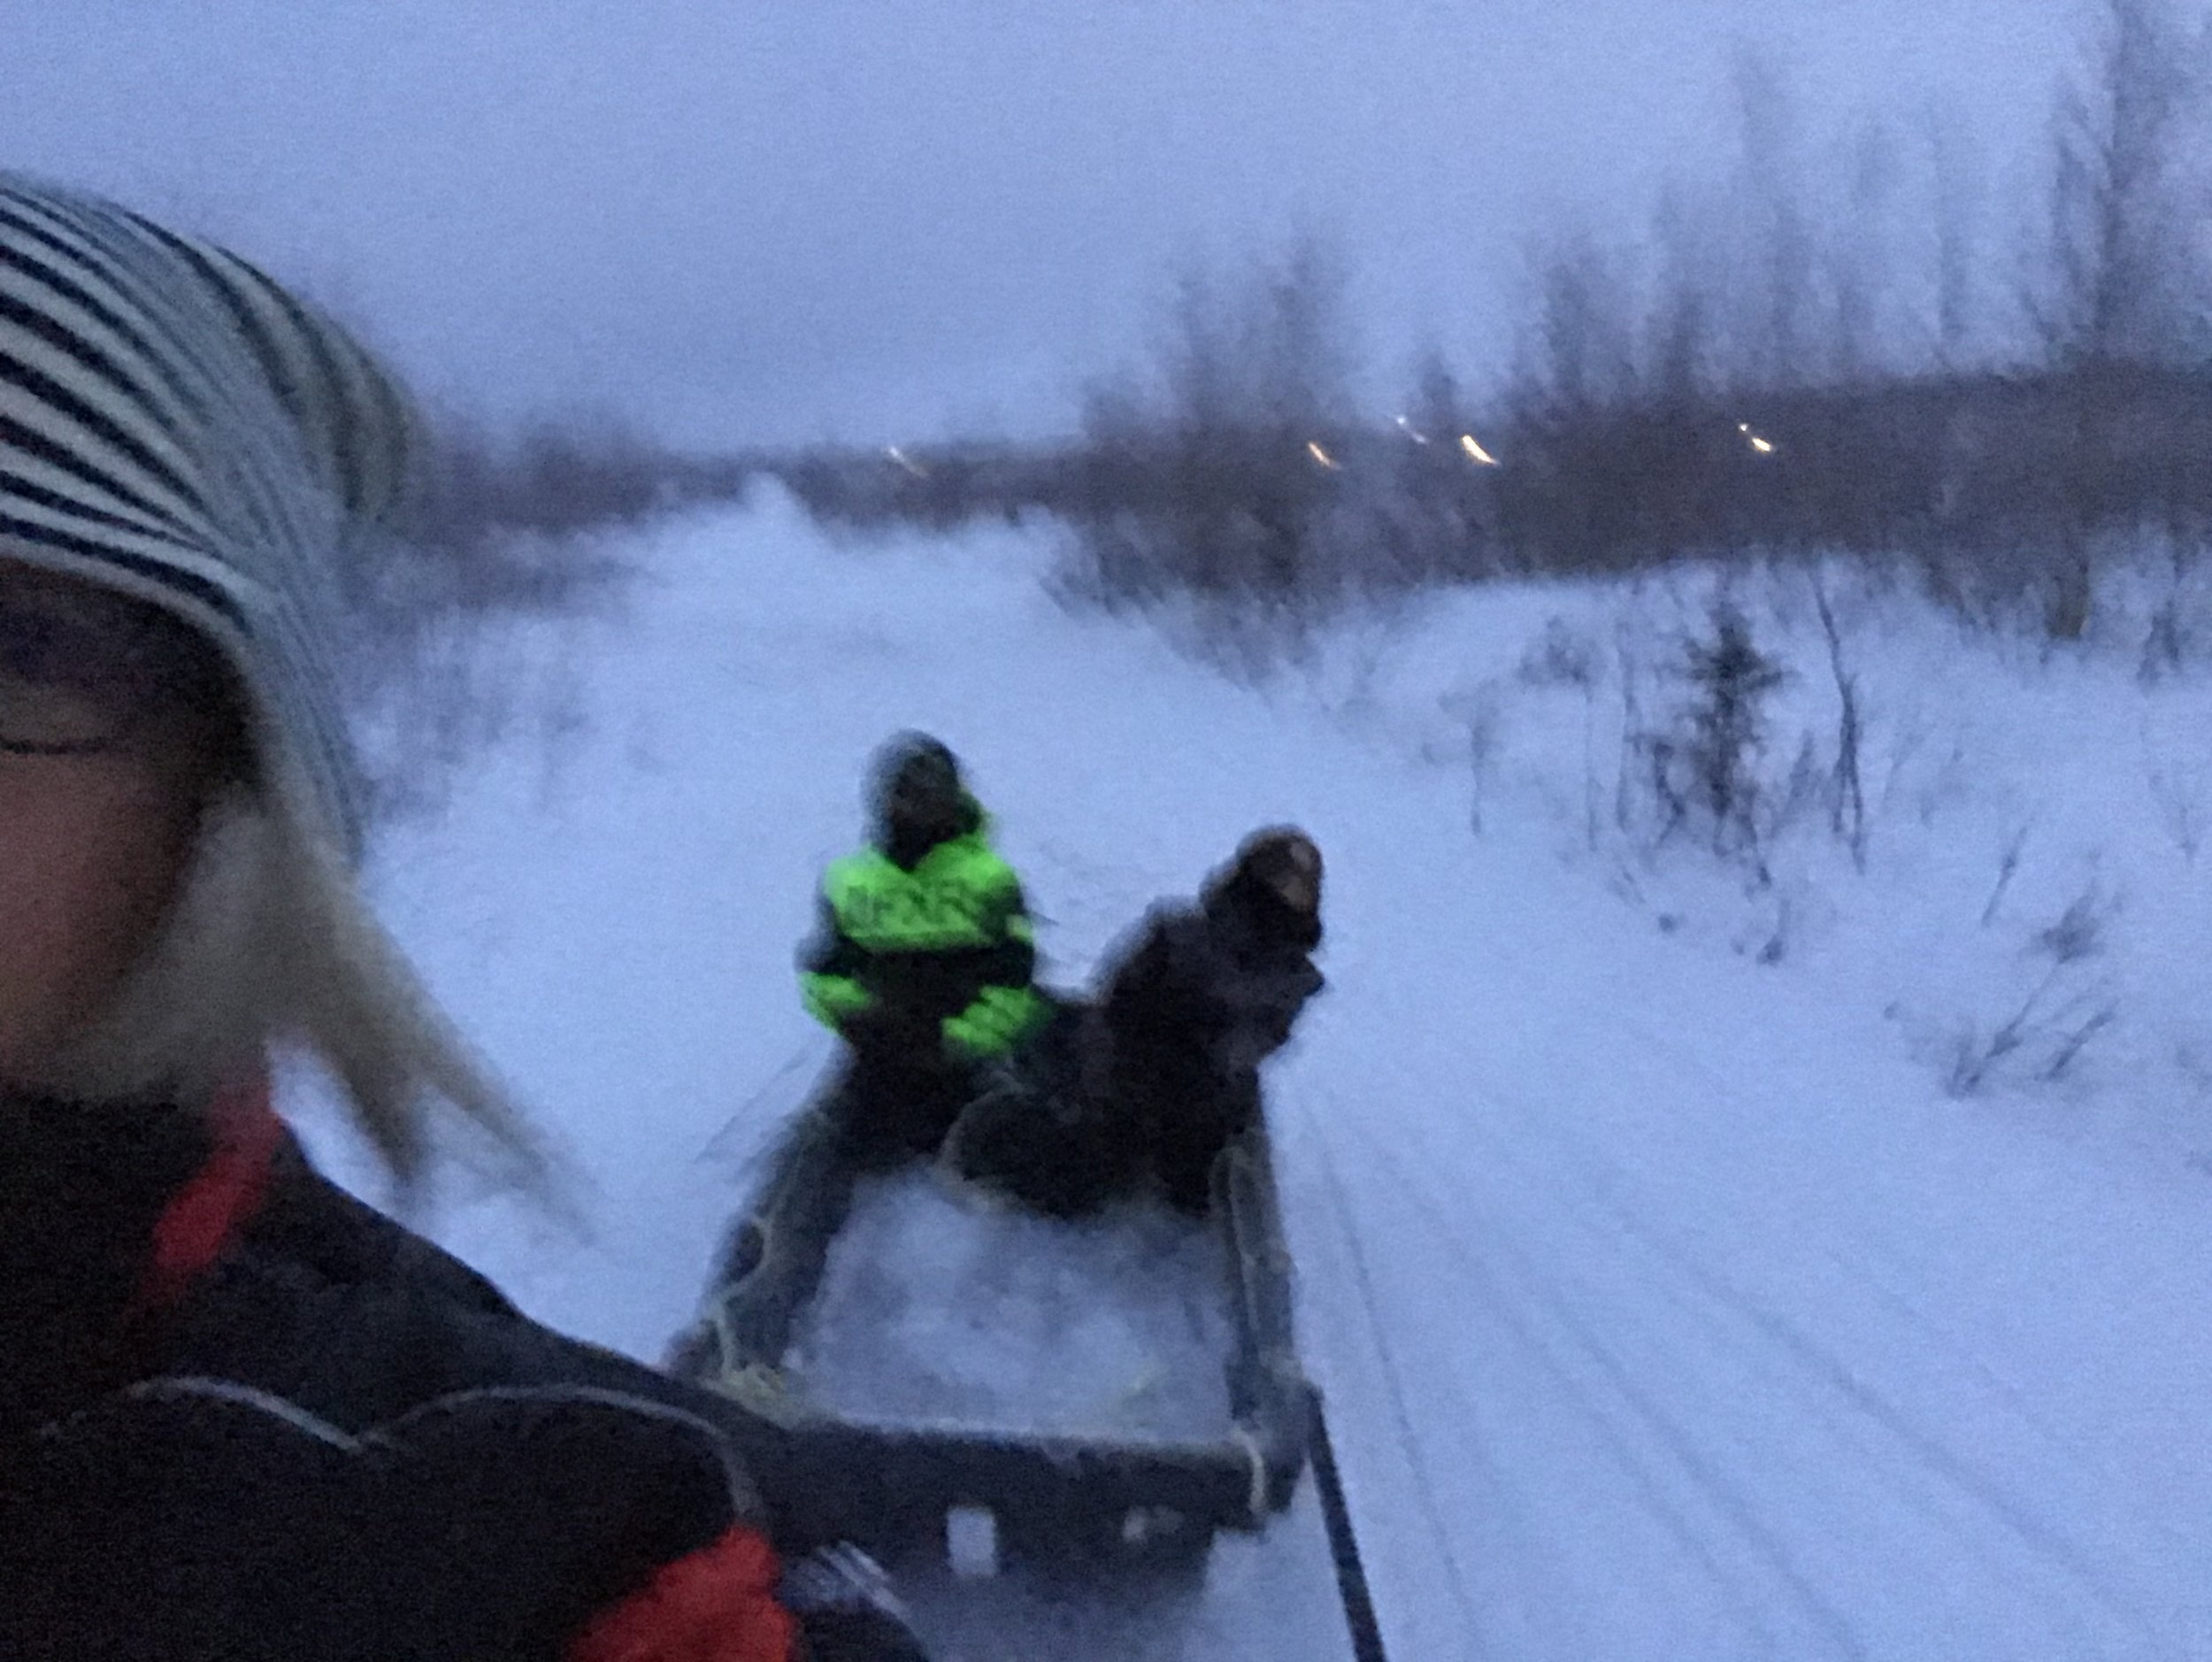 Lisa g hangs on for dear life, while Desmond and Jr are in the sled!